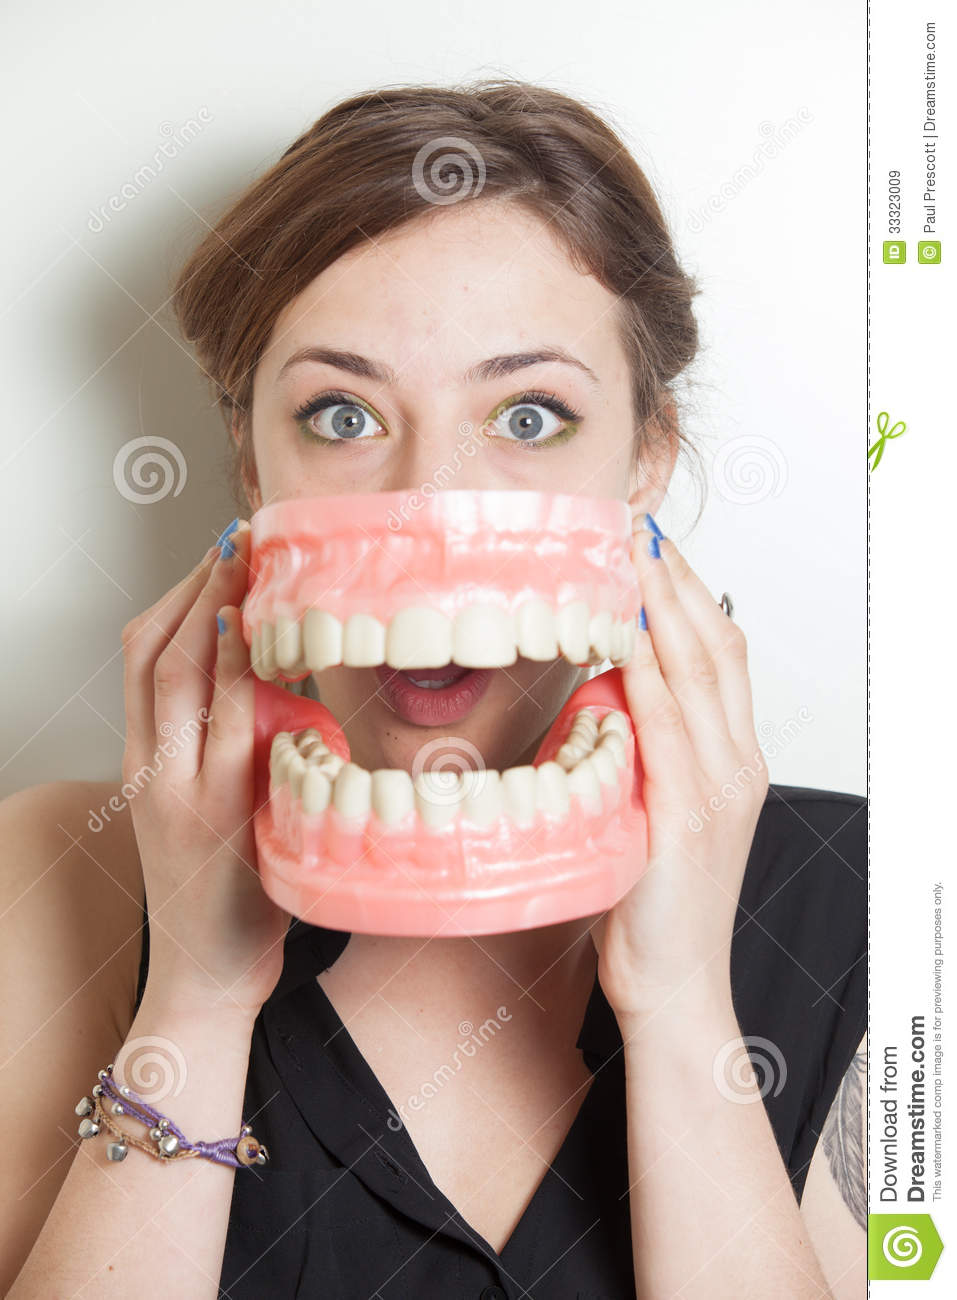 woman with false teeth